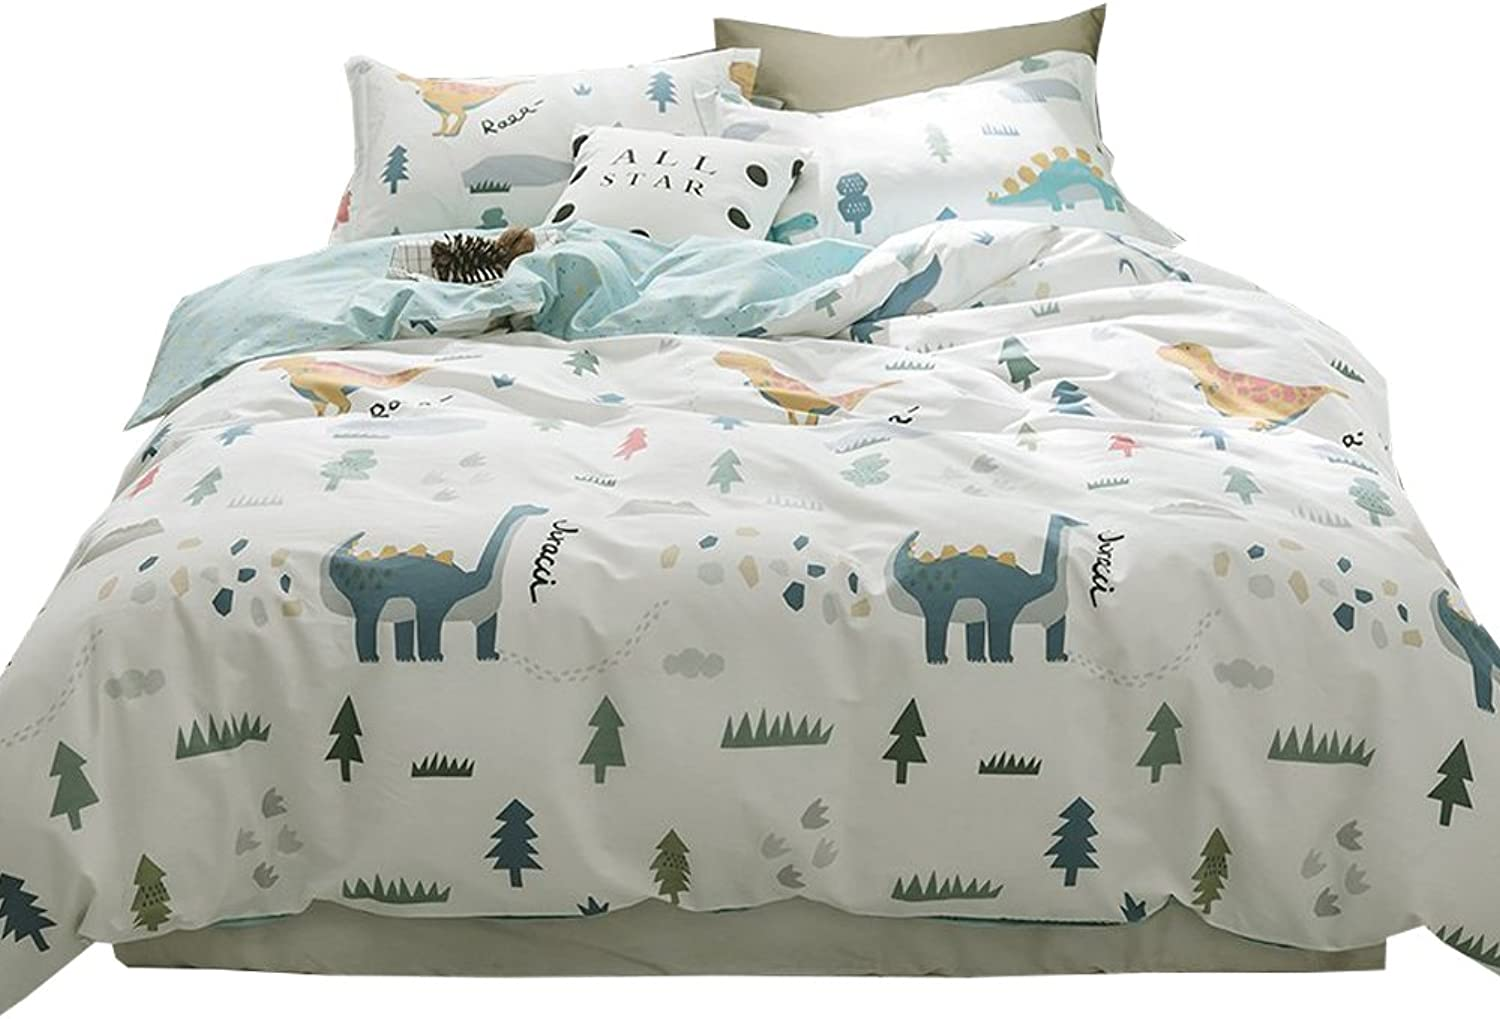 EAVD 100% Cotton Bedding Set Little Boy Reversible Cartoon Boys Teens 3PCS Cute Animal Printing Duvet Cover Soft with 2 Pollowcases, Dinosaur-C Comforter Covers Full Queen Size